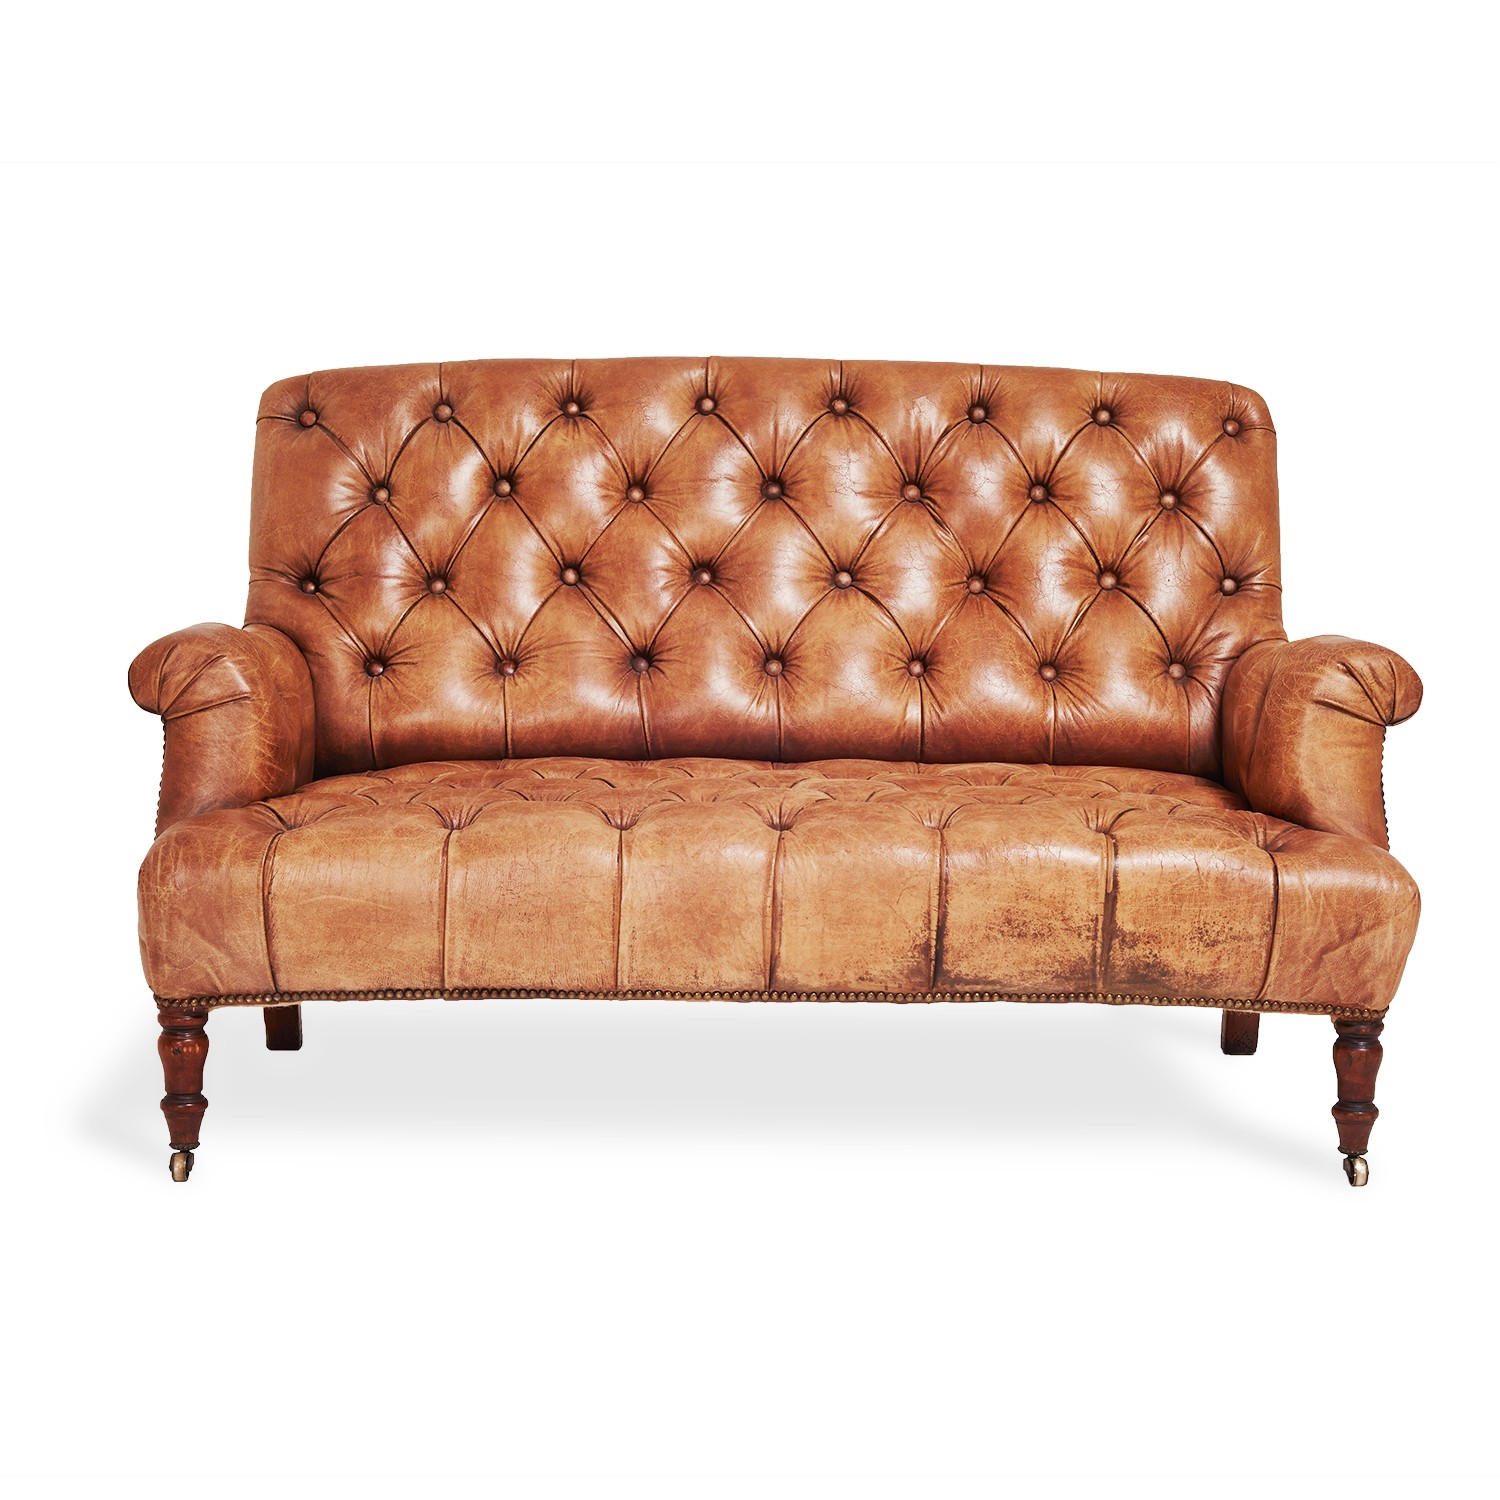 Luxury Tufted Leather Sofa 75 For Living Room Sofa Ideas with Tufted Leather Sofa